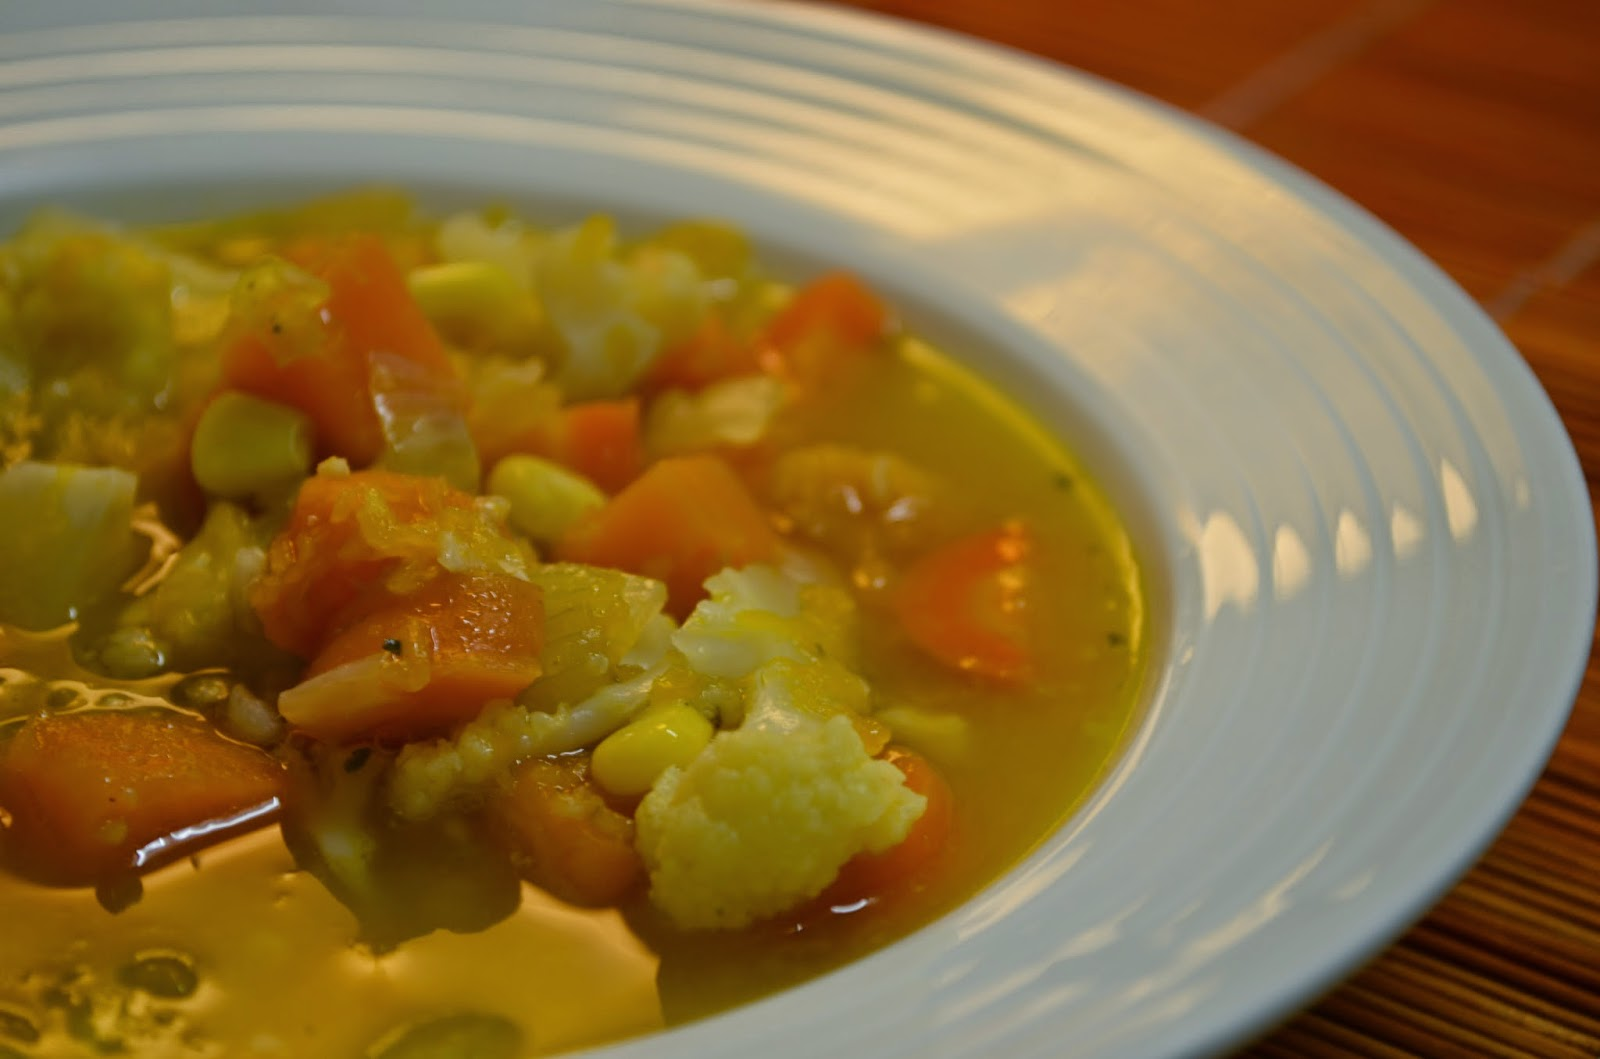 Gingery yellow vegetable soup